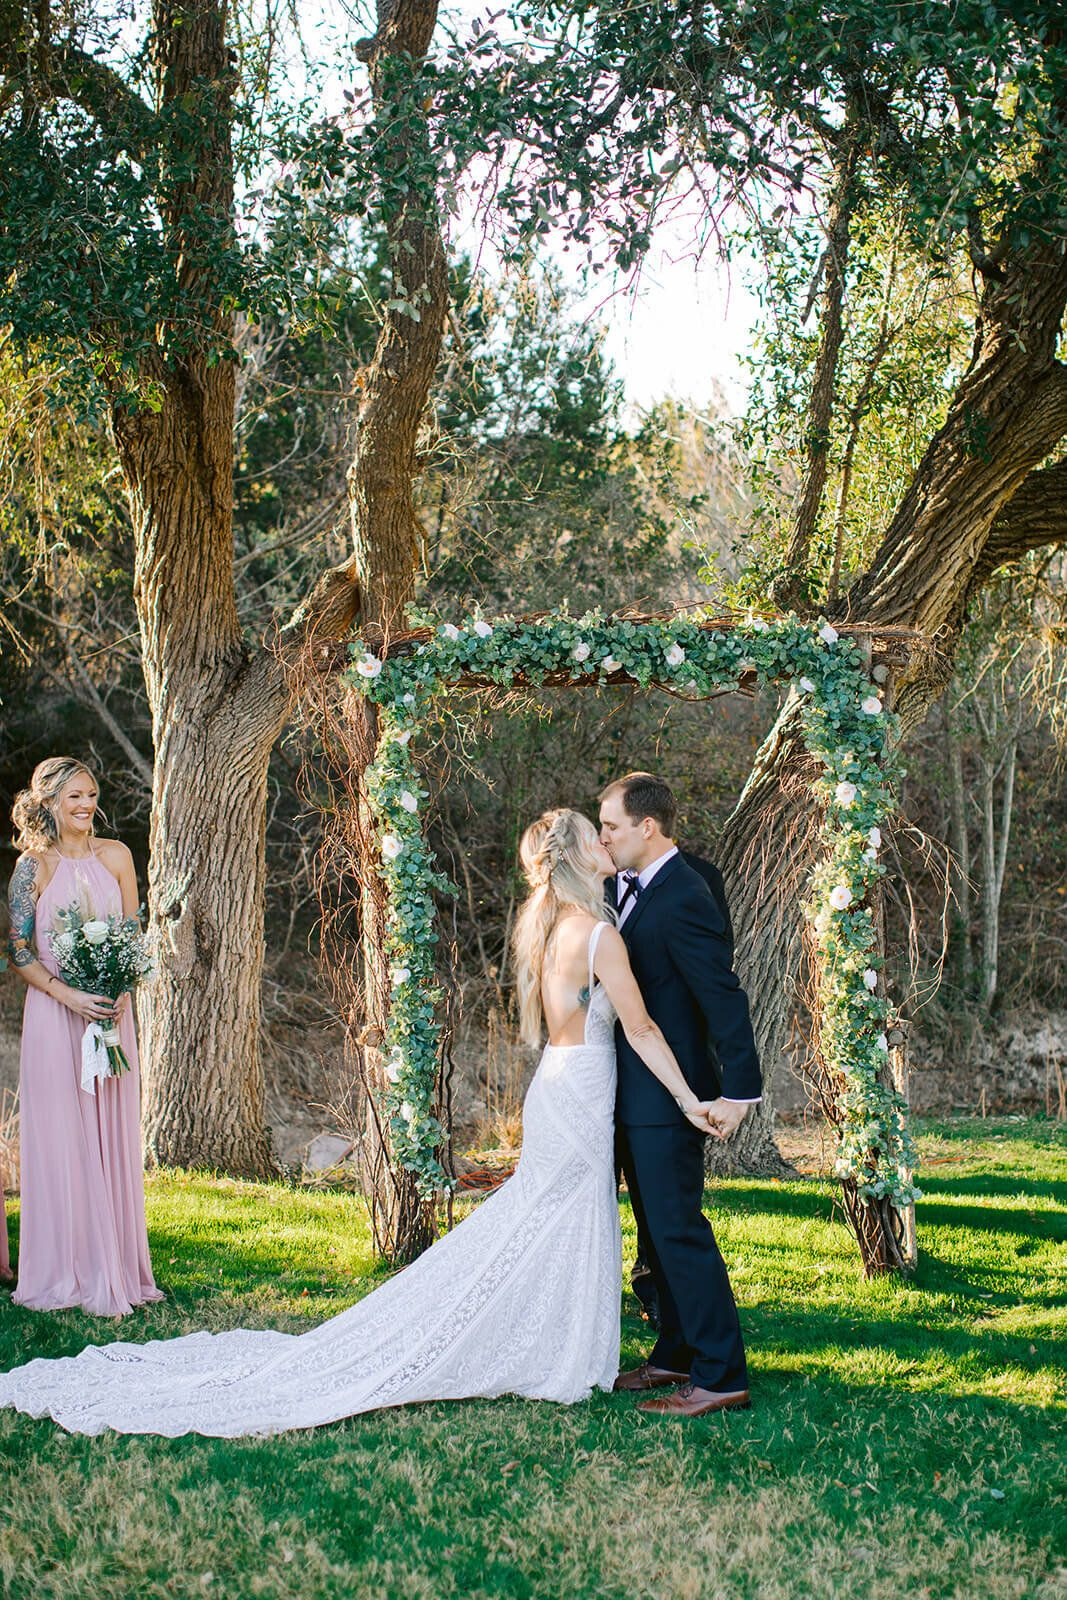 The 6 True Emotional Stages Of Wedding Planning In